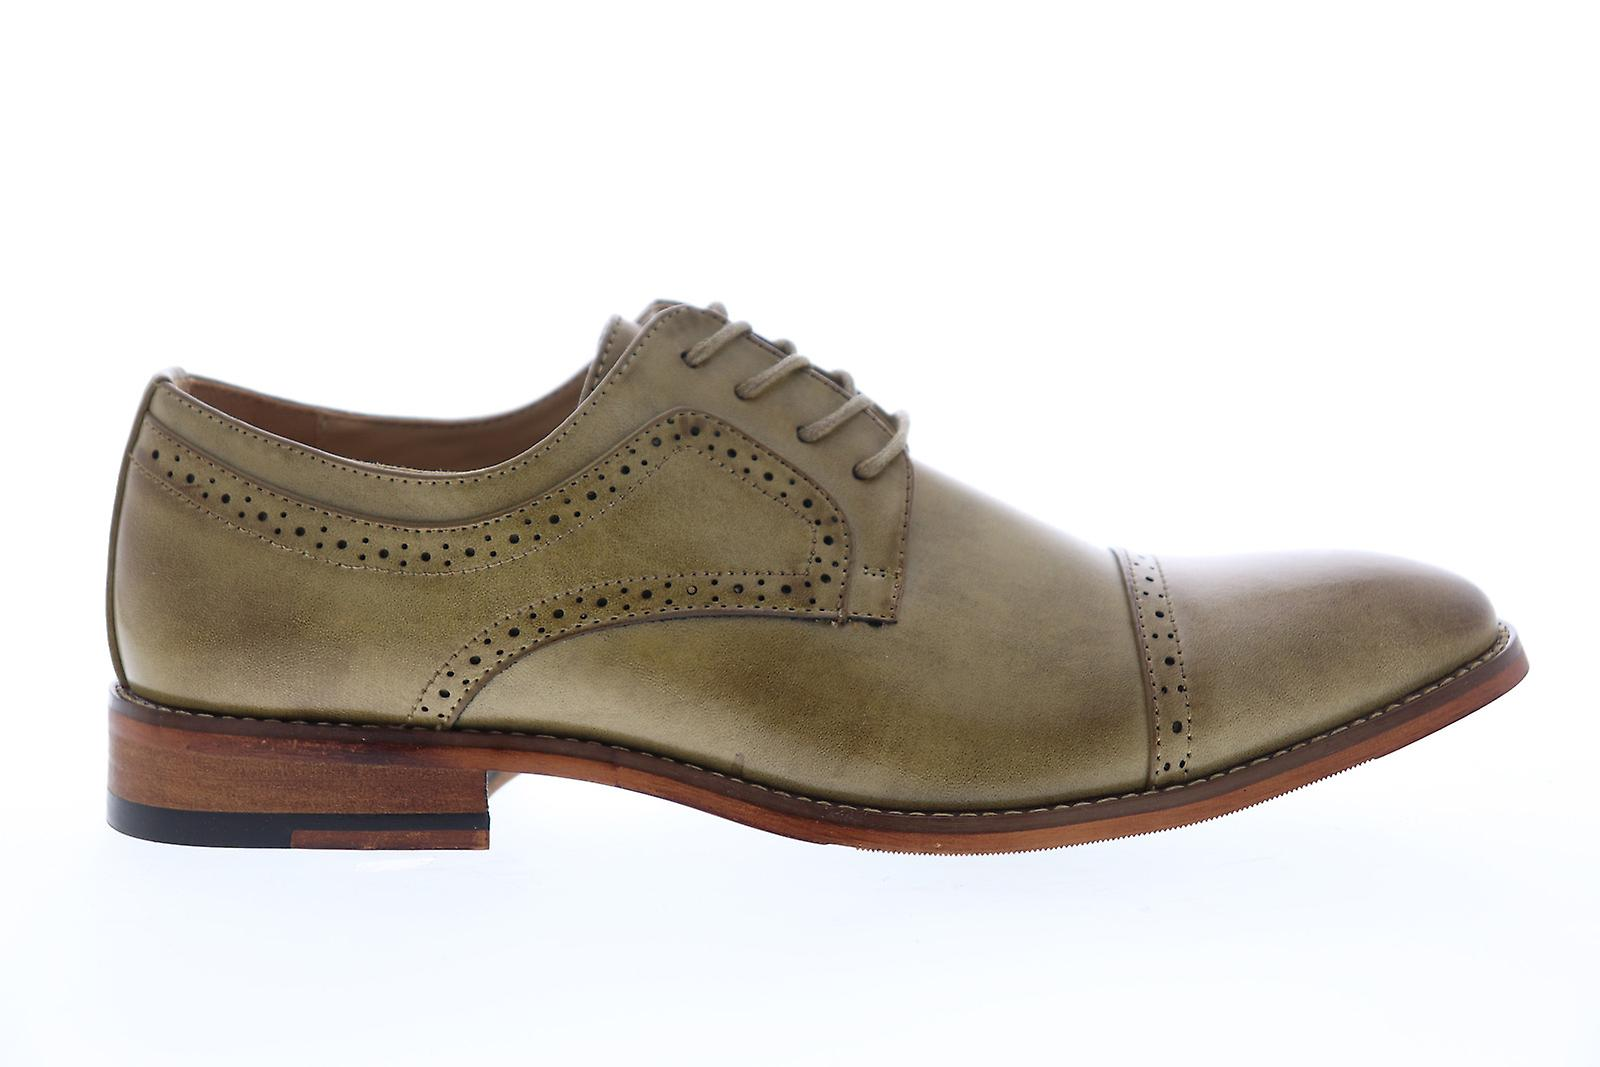 Unlisted Av Kenneth Cole Cheer Lace Up Menn Brown Casual Oxfords Sko